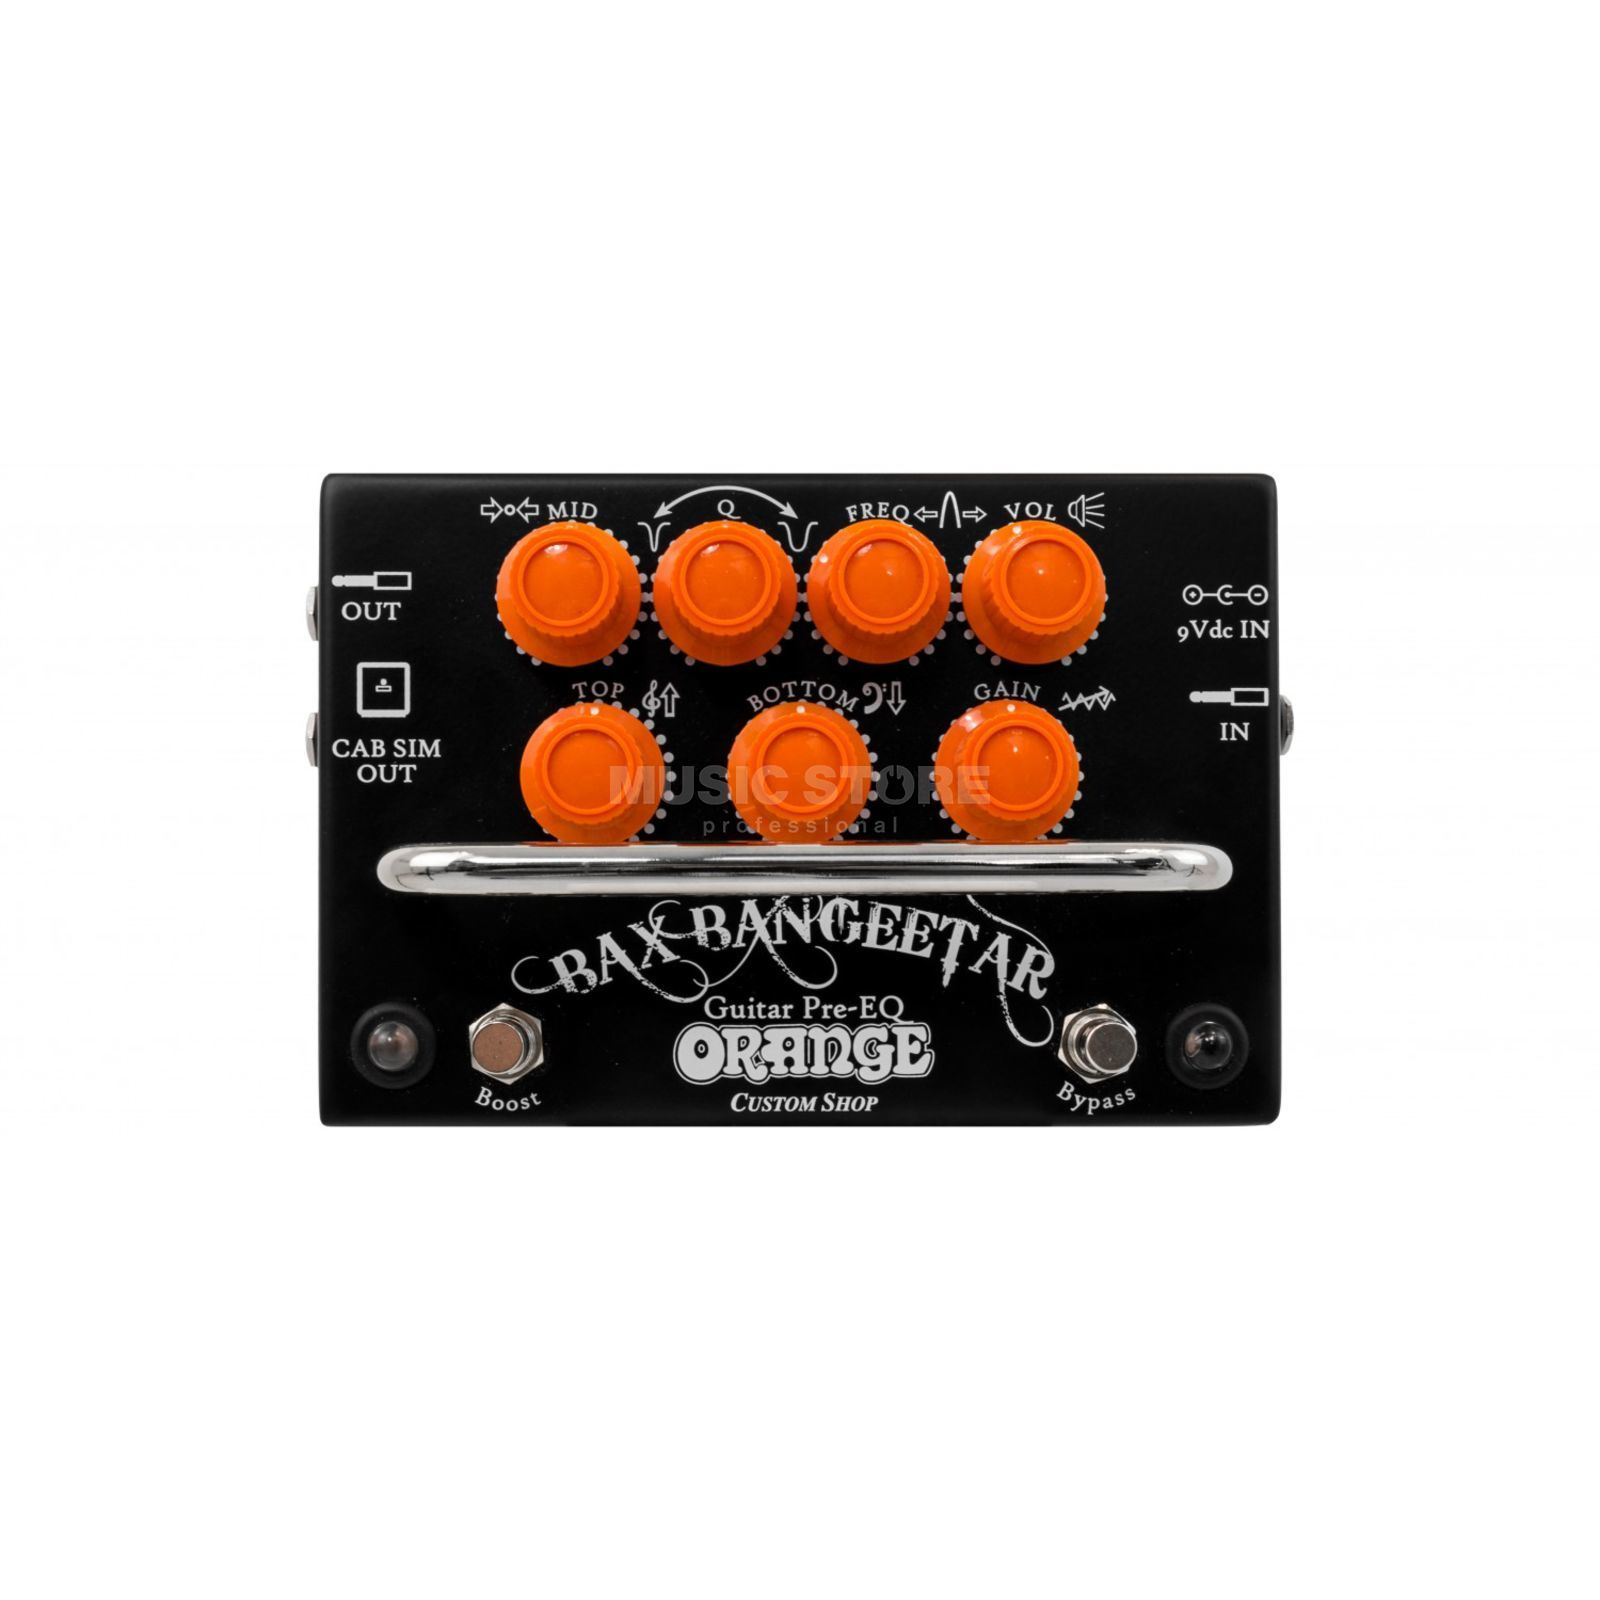 Orange Bax Bangeetar Guitar Pre-EQ Black Product Image